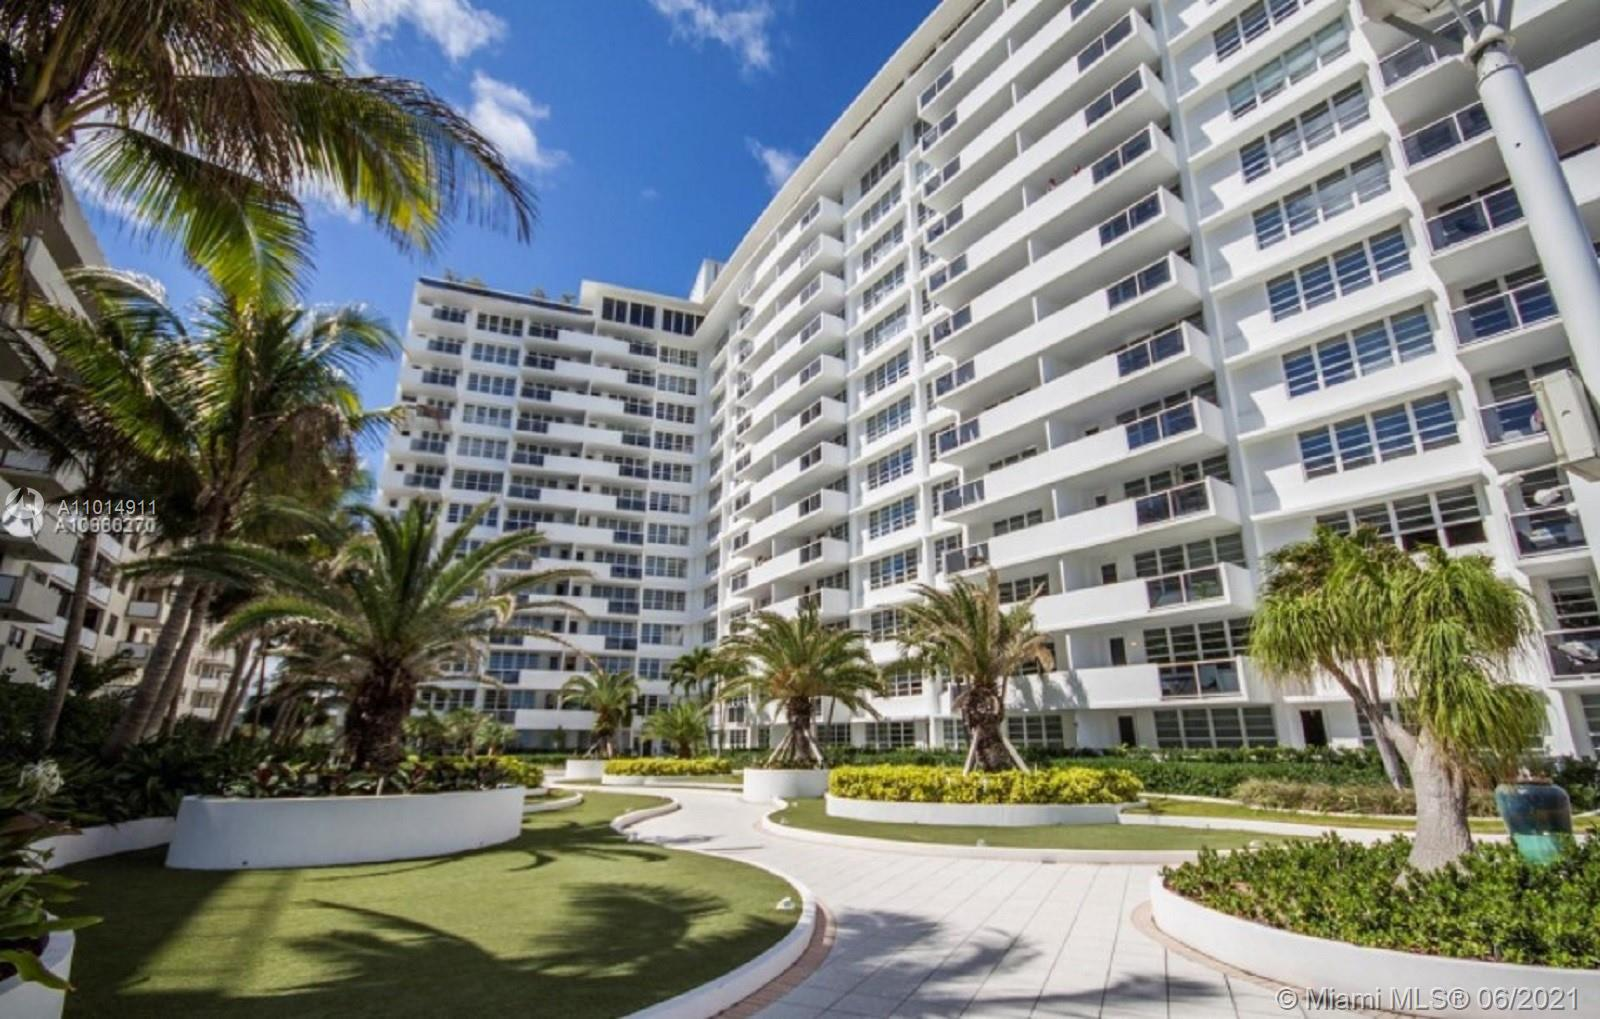 Completely renovated , 1 bedroom 1.5 bath, most desired location, South East corner unit with balcony and a direct Ocean view.  Building has 24 hour security, pool, gym,  free 1 valet parking, WiFi, Digital Cable, water, electricity for the air condition, laundry room on each floor, and Club Room. Best location in South Beach, on the ocean, across from The Ritz Carlton, on Lincoln Road, walking distance to Lincoln Mall, restaurants, famous brand stores, pharmacy, movie theater, Ocean Drive, entertainment. Close to Miami Airport, Downtown & Design District. Application fee and Association approval required